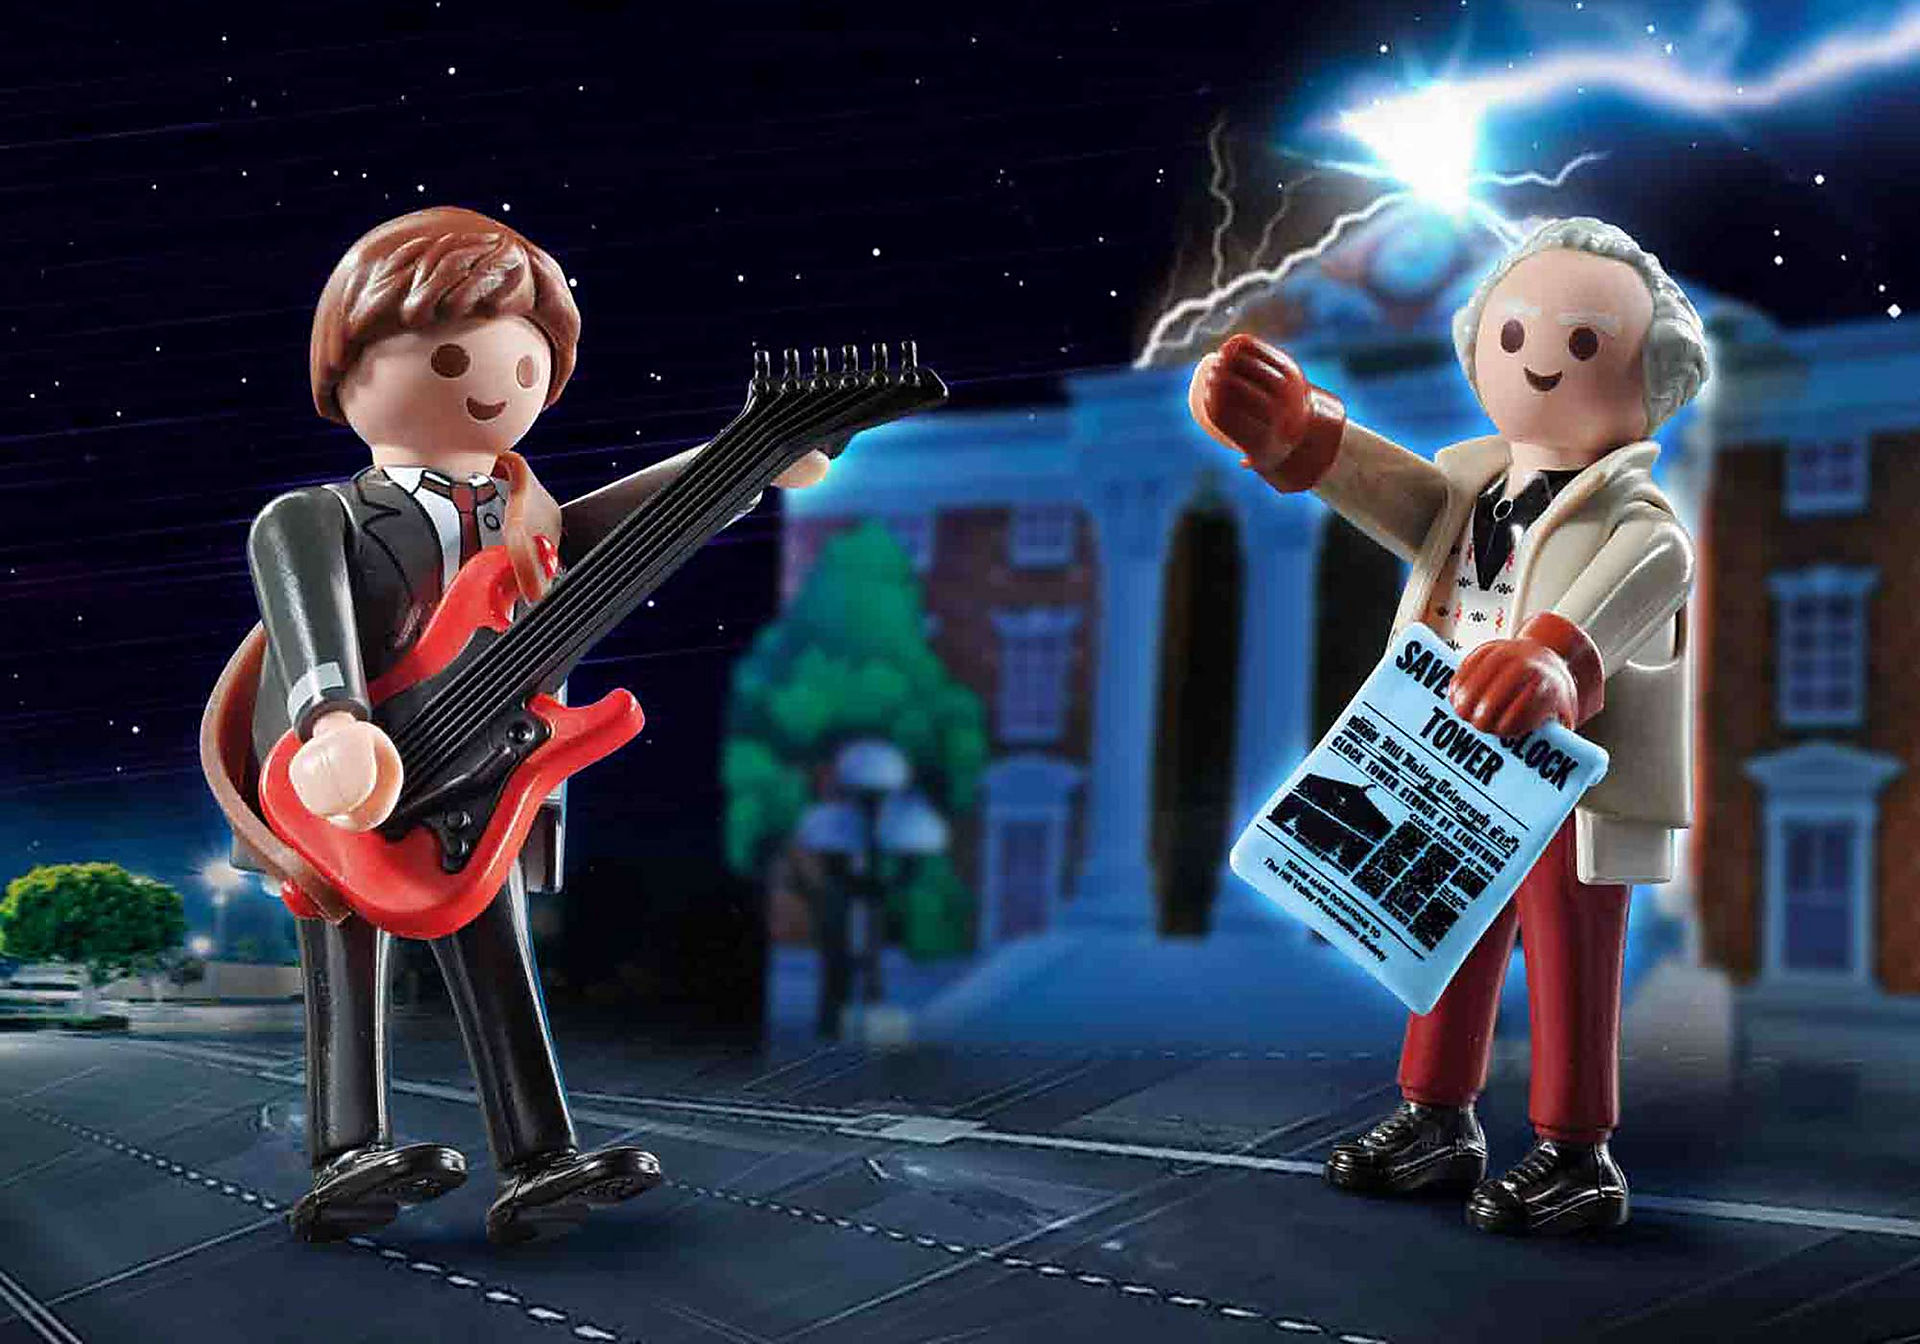 70459 Back to the Future Marty Mcfly and Dr. Emmett Brown zoom image1